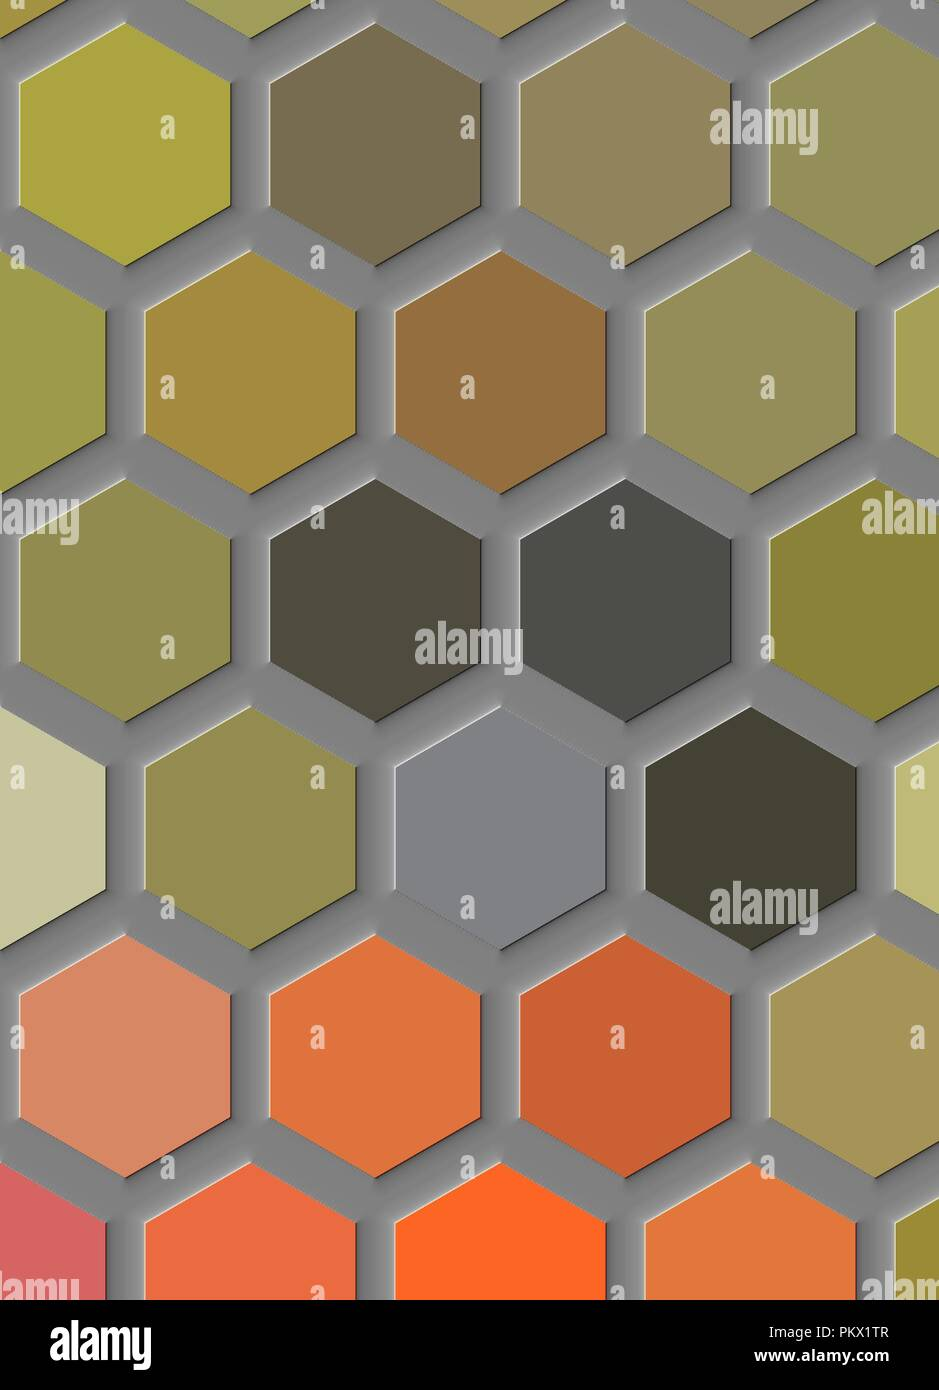 Hexagon Shapes Stock Photos & Hexagon Shapes Stock Images - Alamy